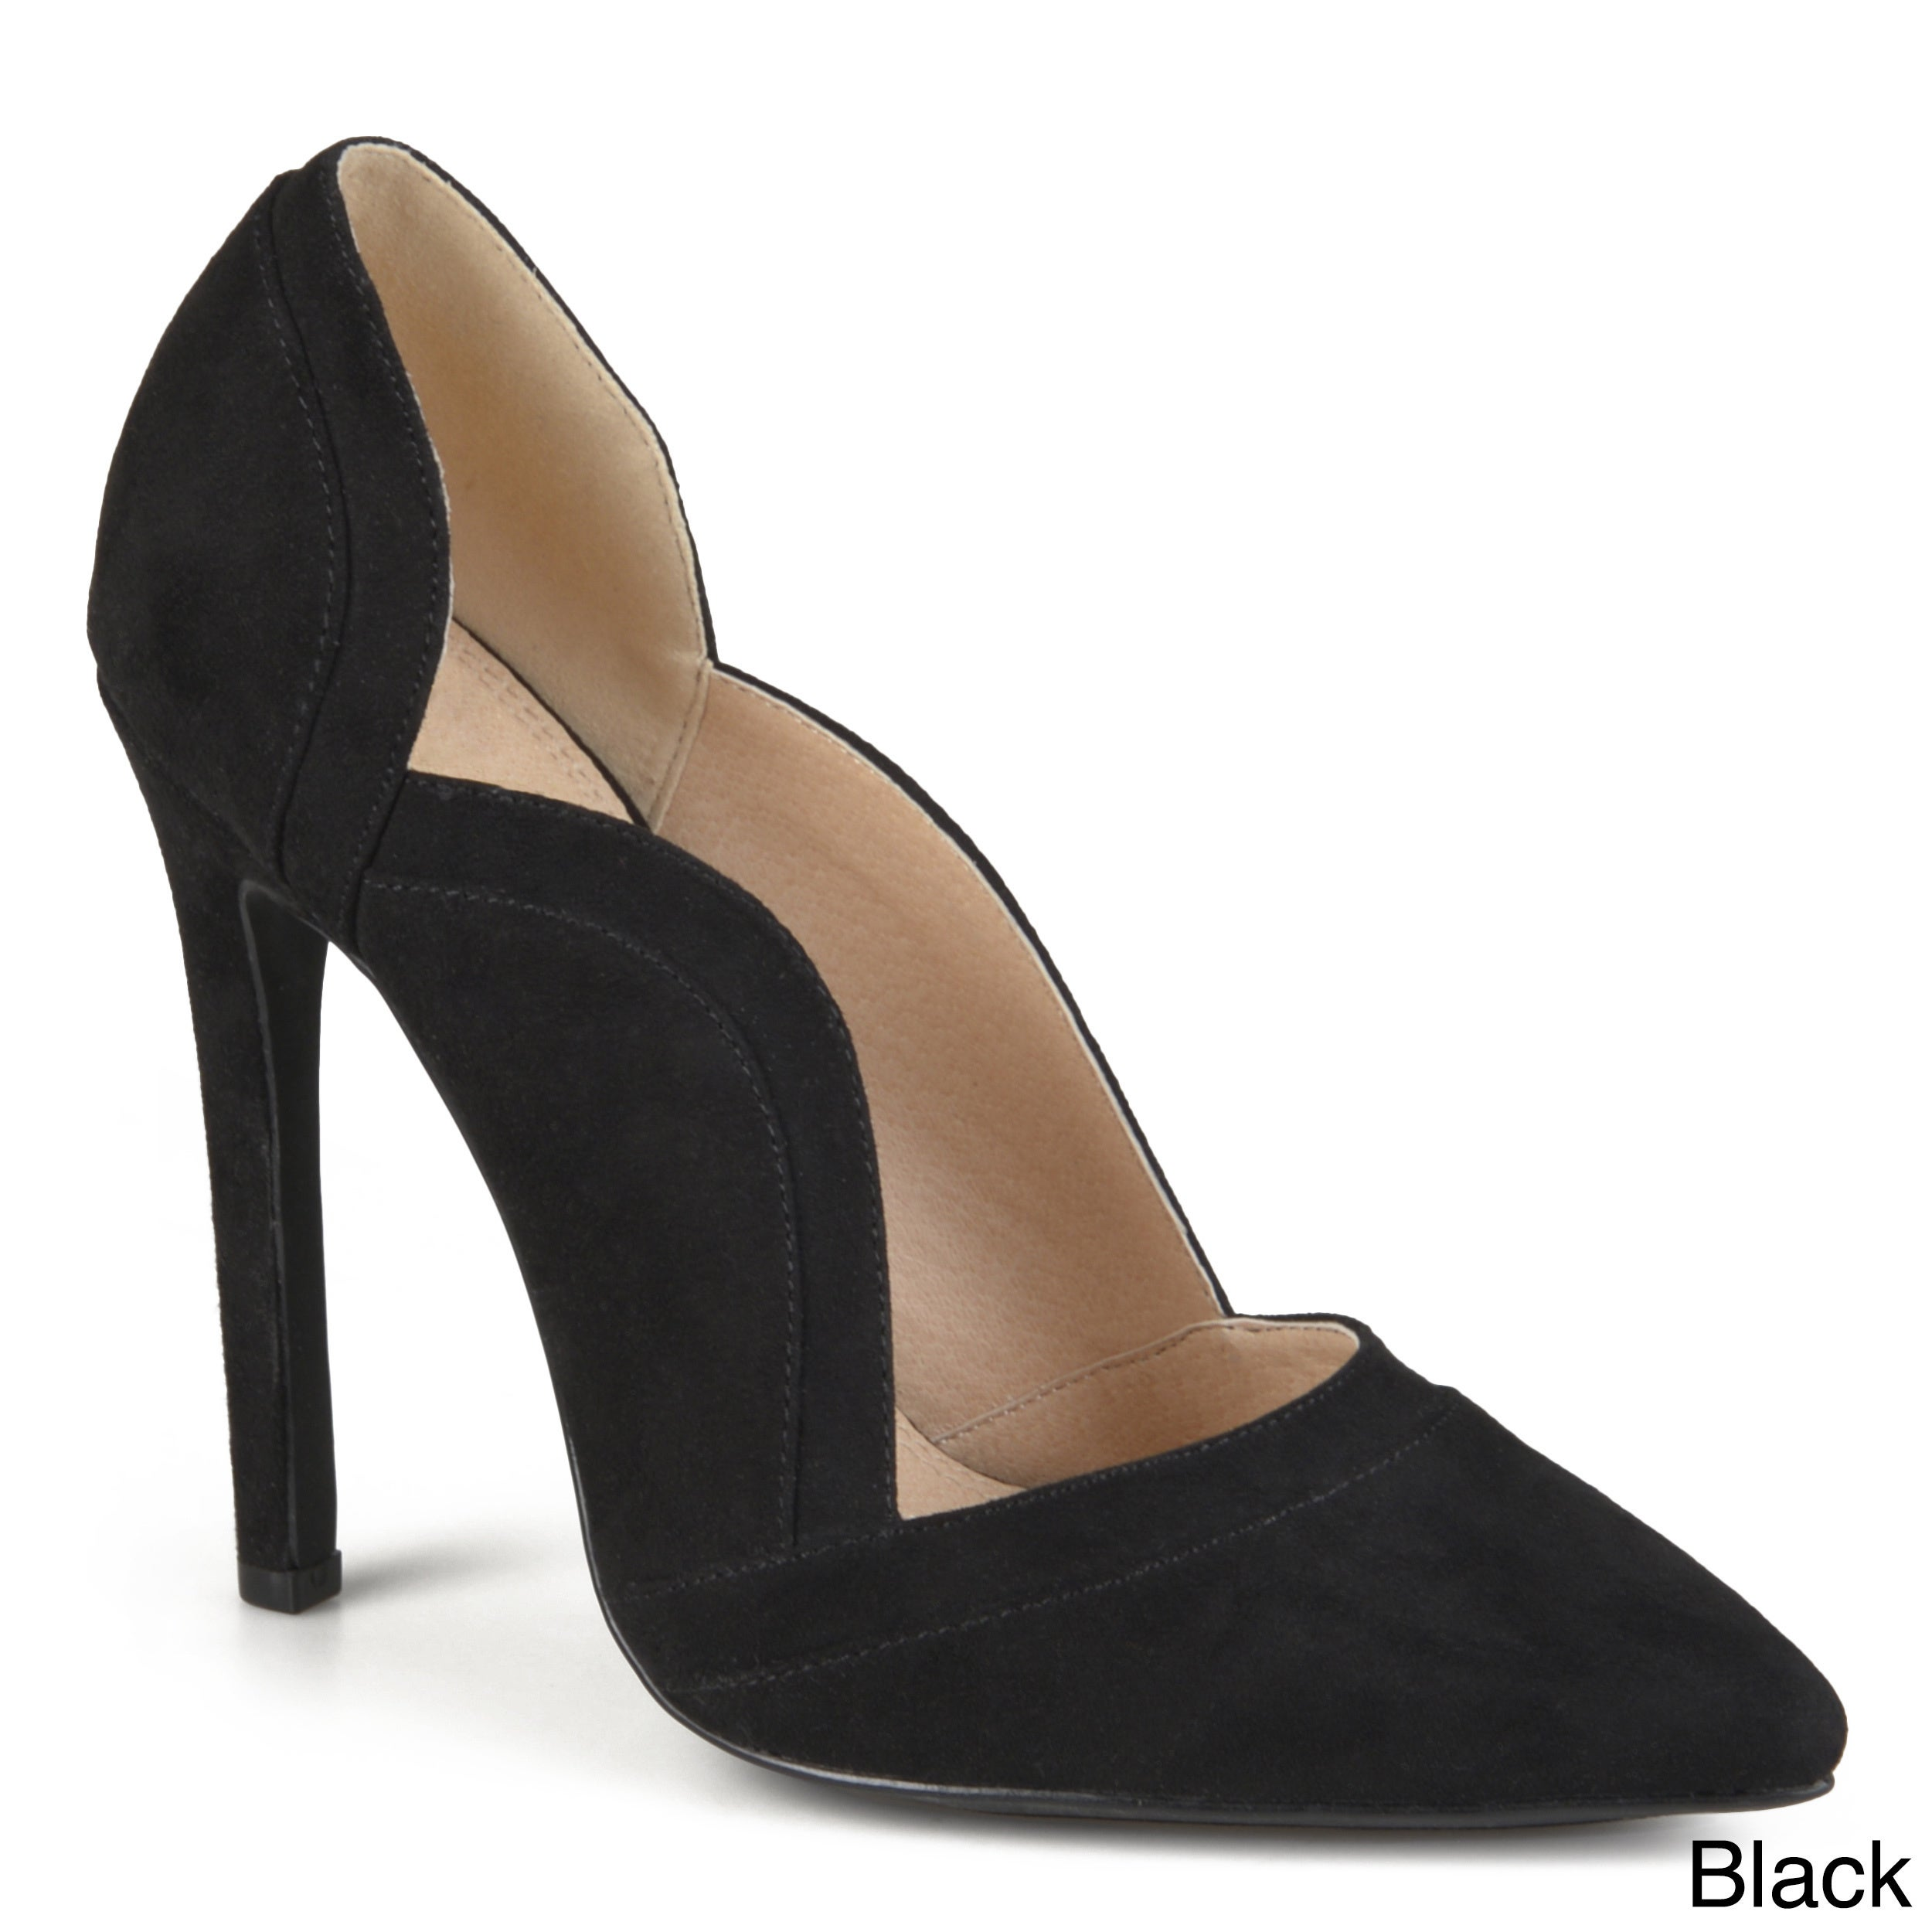 9eaba9f5a63 Shop Journee Collection Women s  Adley  Faux Suede Scalloped Pumps - Free  Shipping Today - Overstock - 12073918